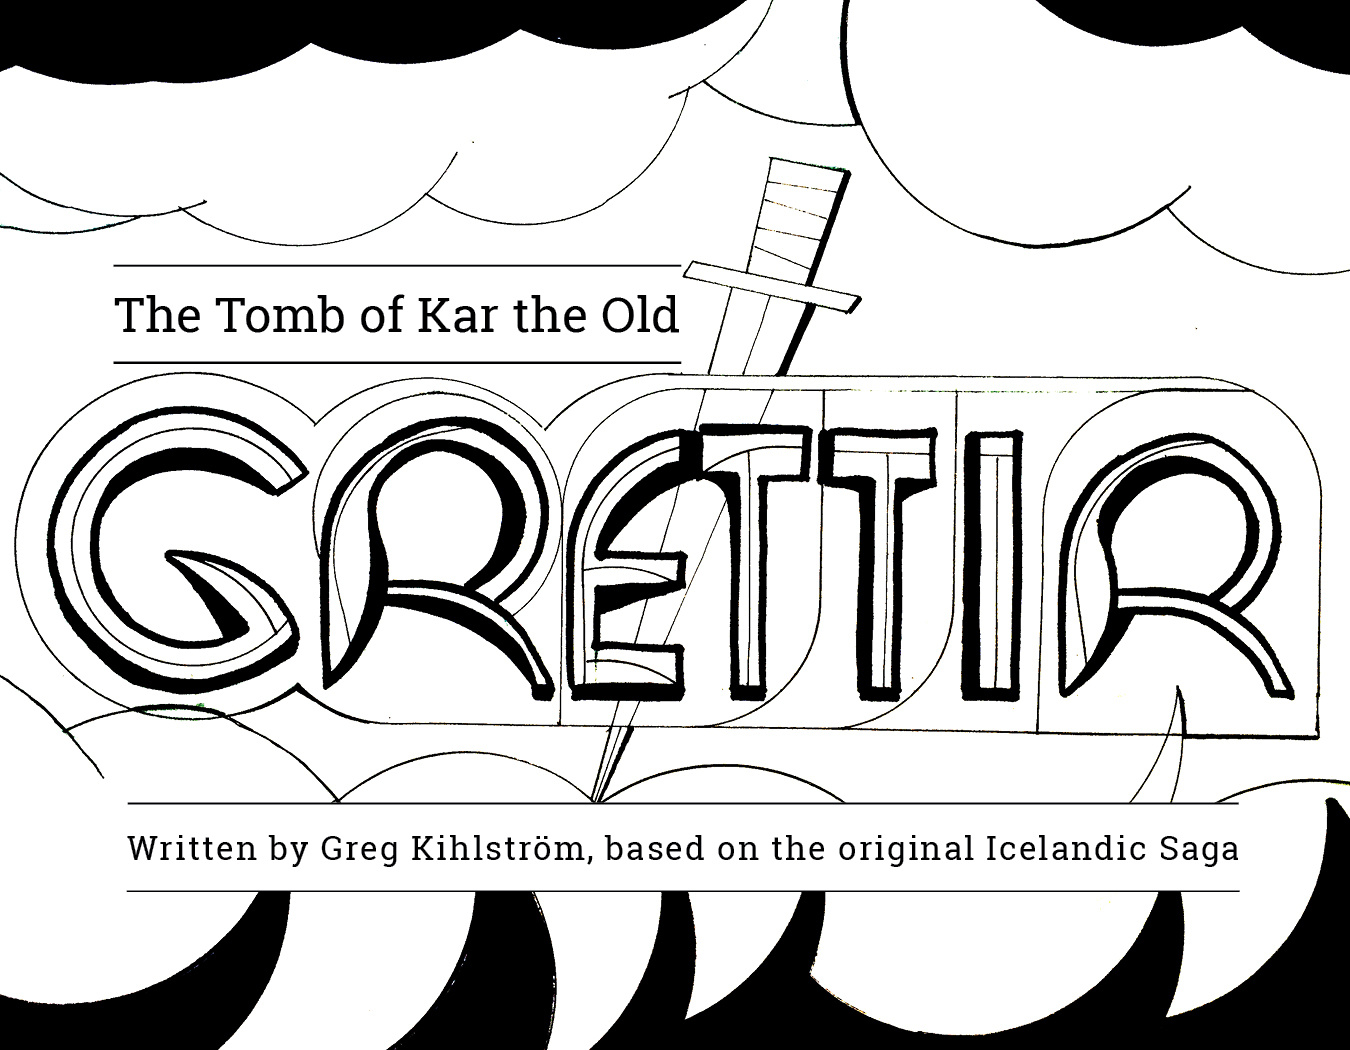 - Grettir the StrongChapter 3: The Tomb of Kar the OldBy Greg Kihlström